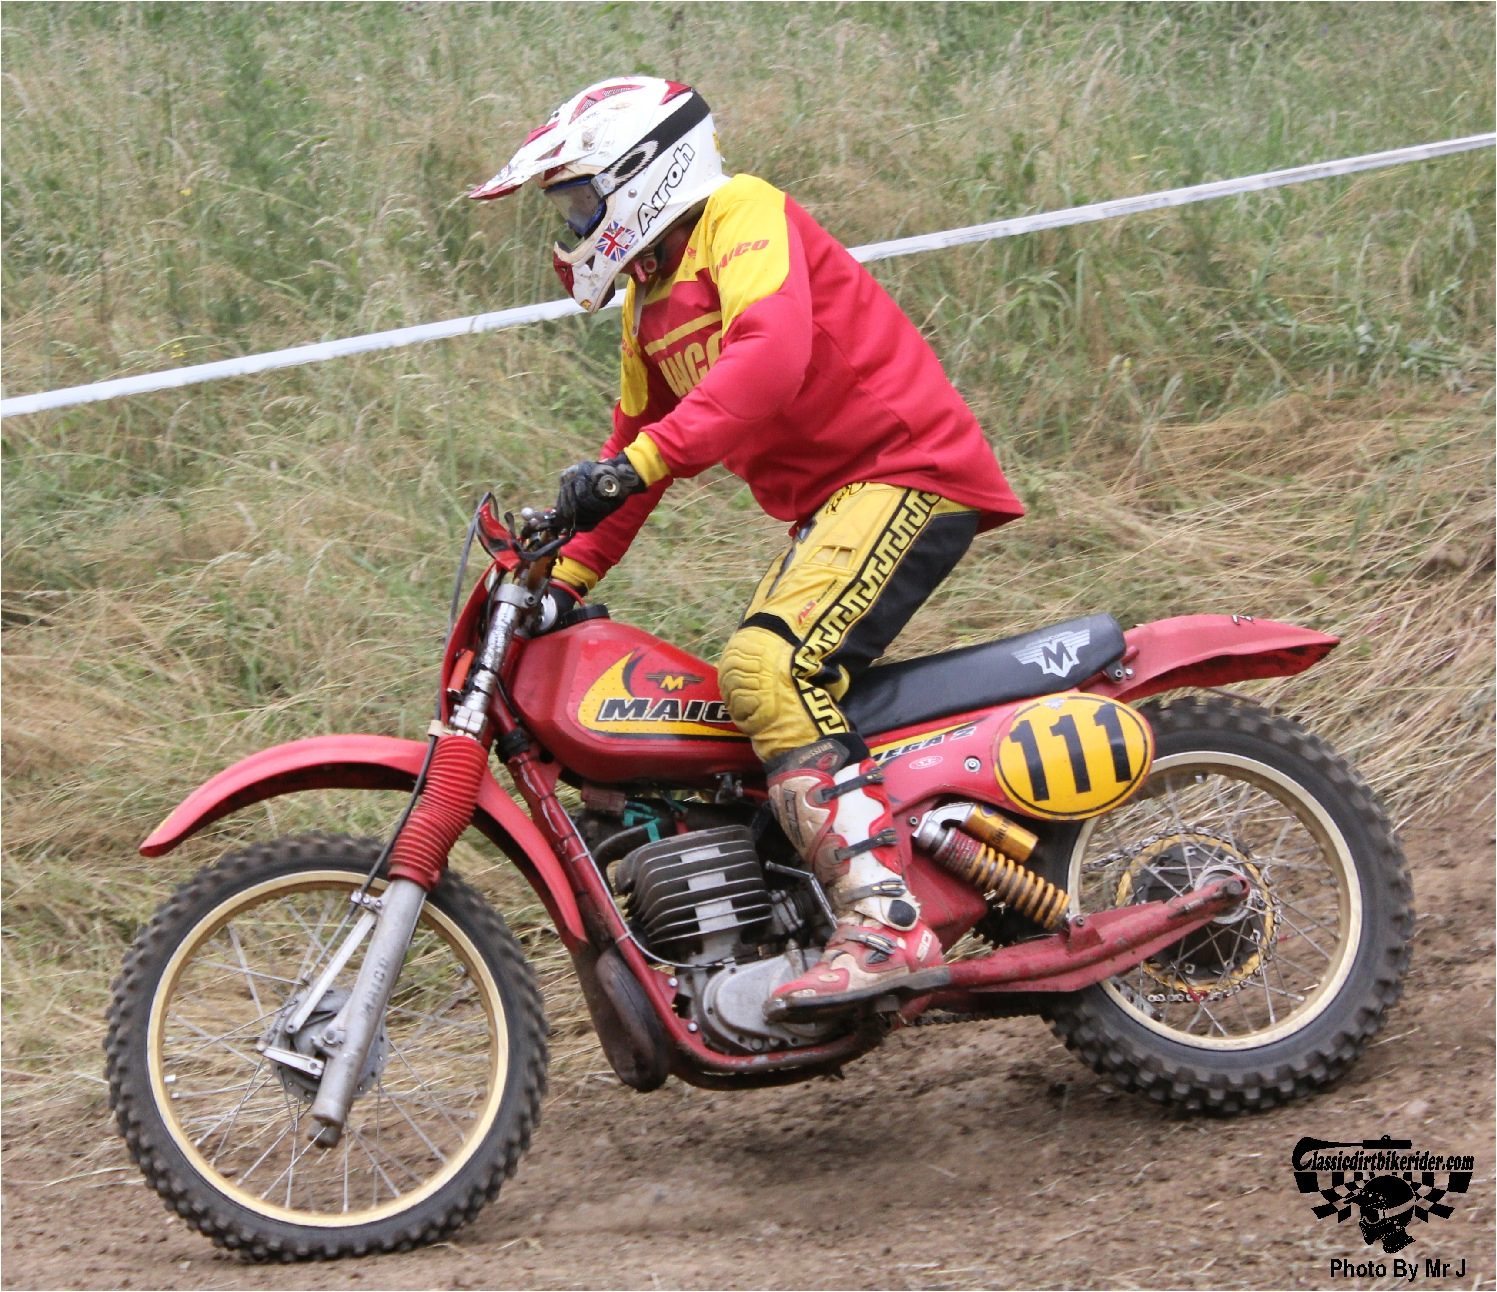 king of the castle 2015 photos Farleigh Castle twinshock motocross classicdirtbikerider.com 55